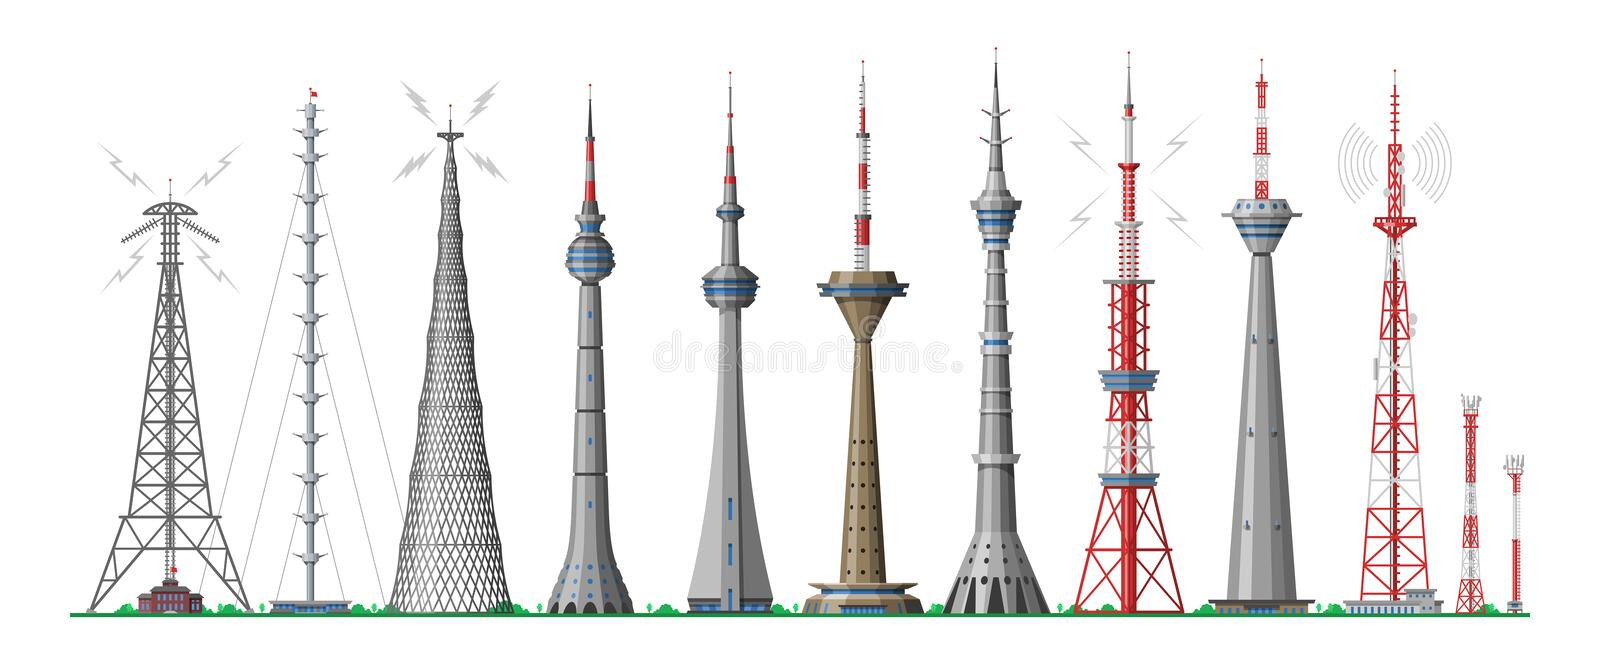 Tower vector global skyline towered antenna construction in city and skyscraper building with network communication royalty free illustration